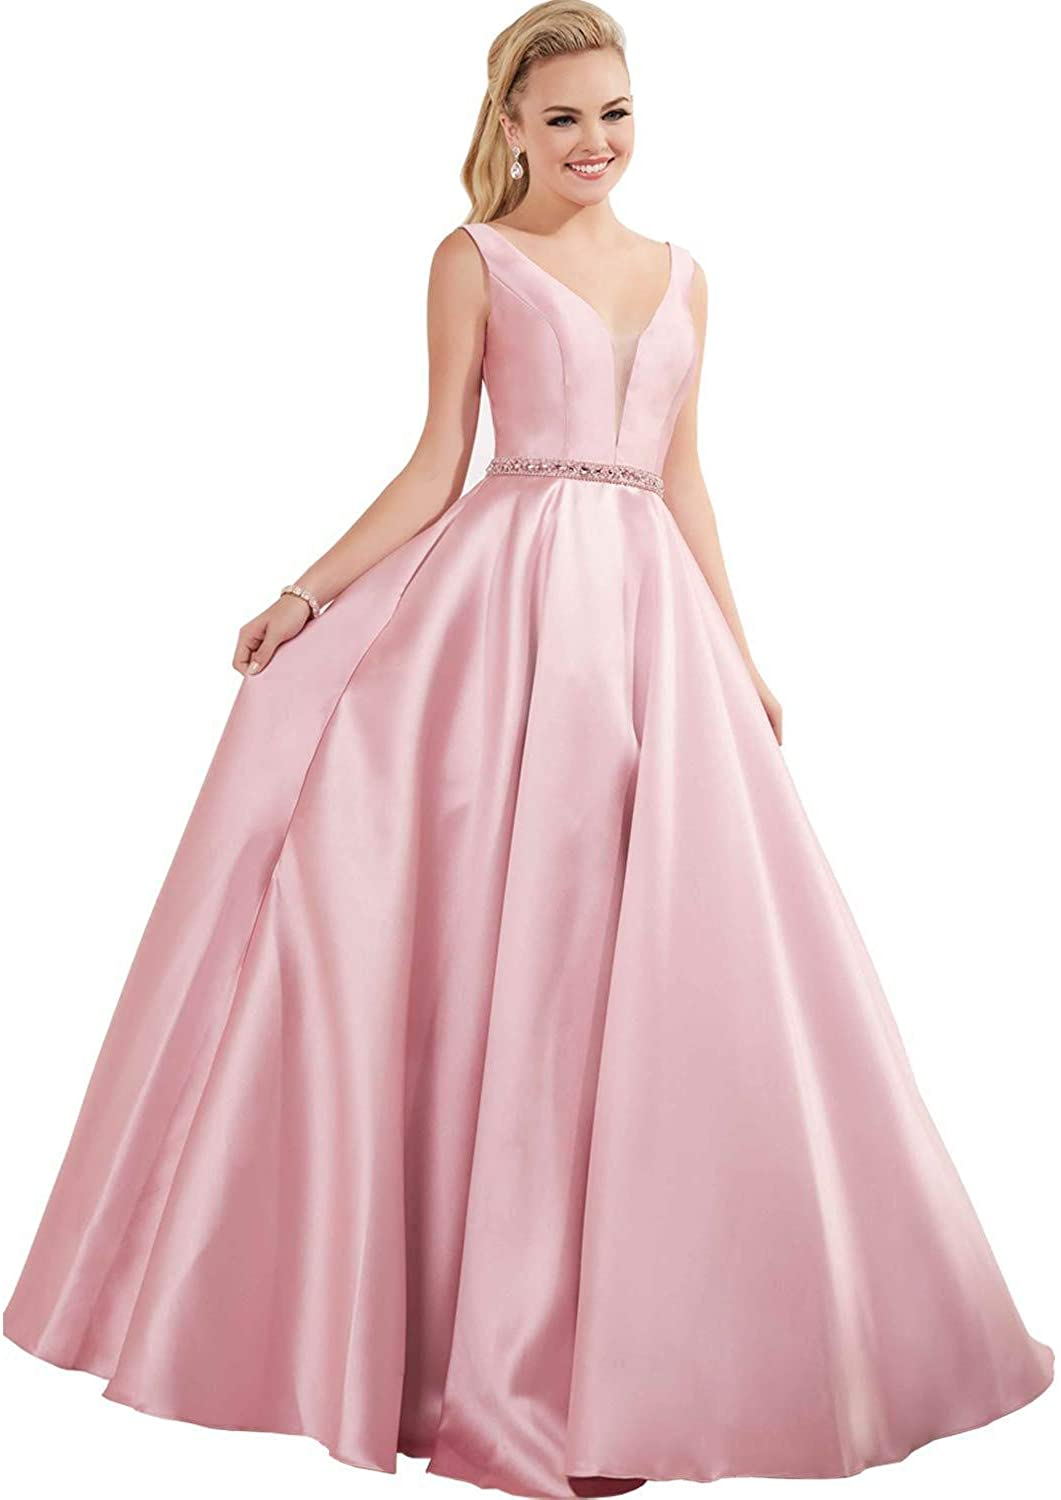 MYDRESS V-Neck Prom Dresses Long Satin A Line Beaded with Pockets Wedding Dress for Women